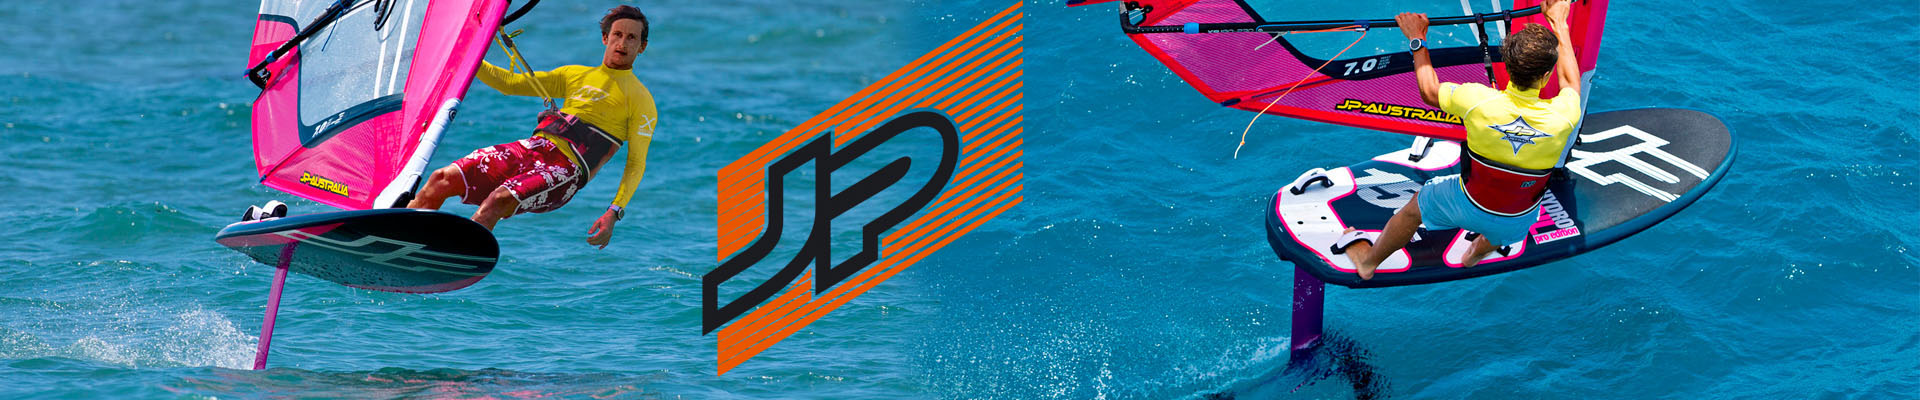 Foiling , JP / Naish / Fanatic |br|SOFORT geliefert!